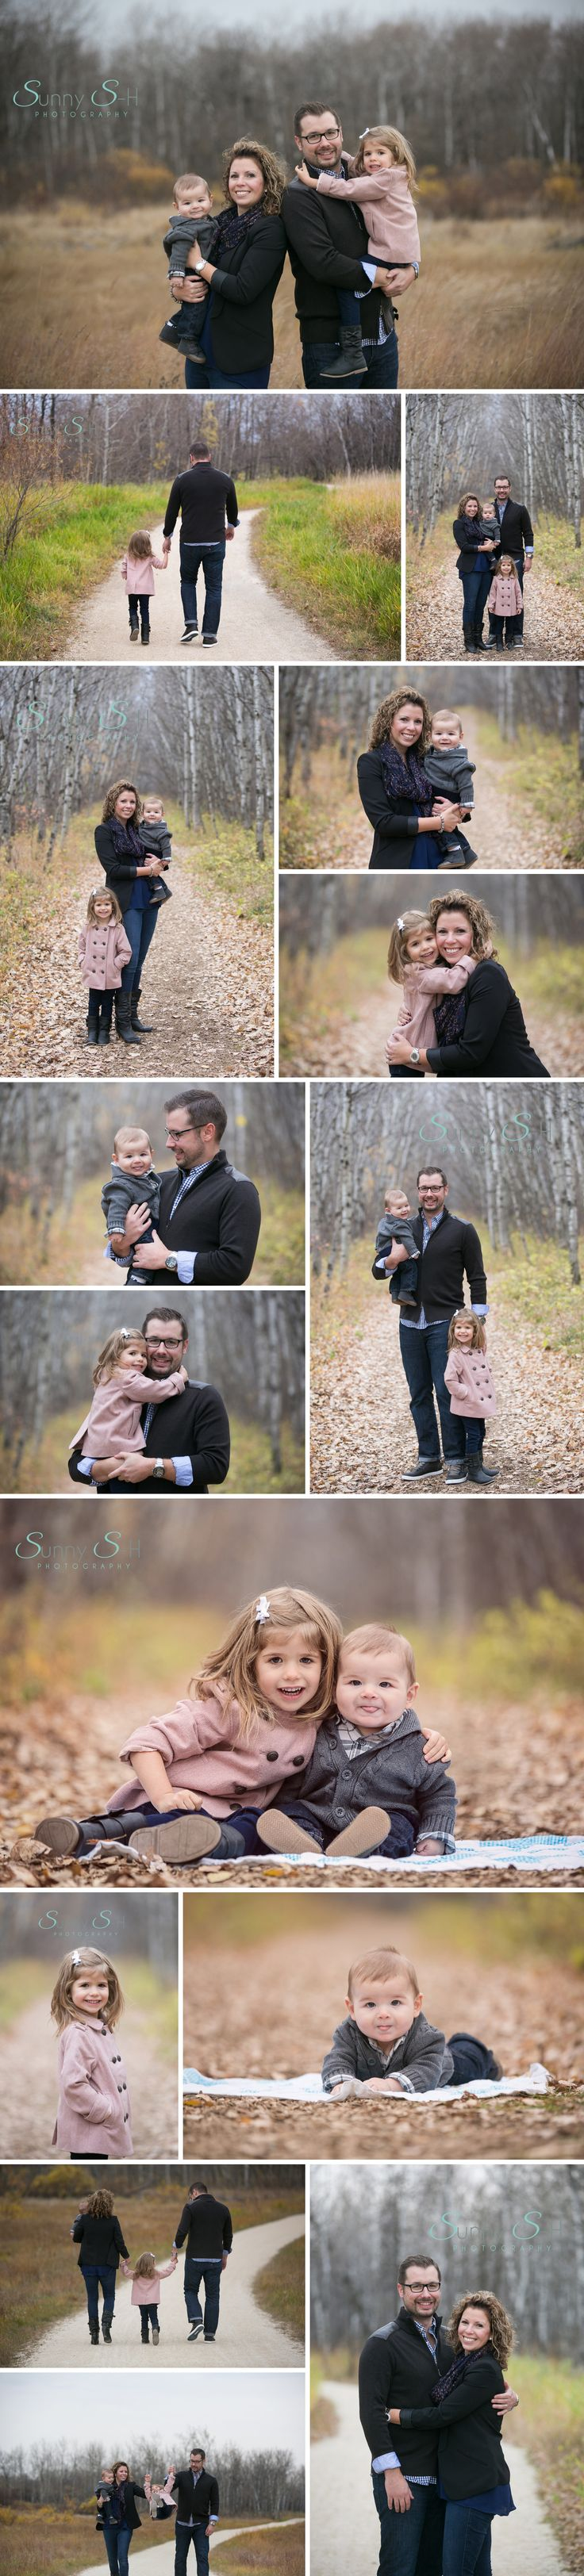 Late fall family portraits.  The leaves are gone, but the trees still look amazing.  Loving this family of four.  So many smiles.  Fall family portrait photography.